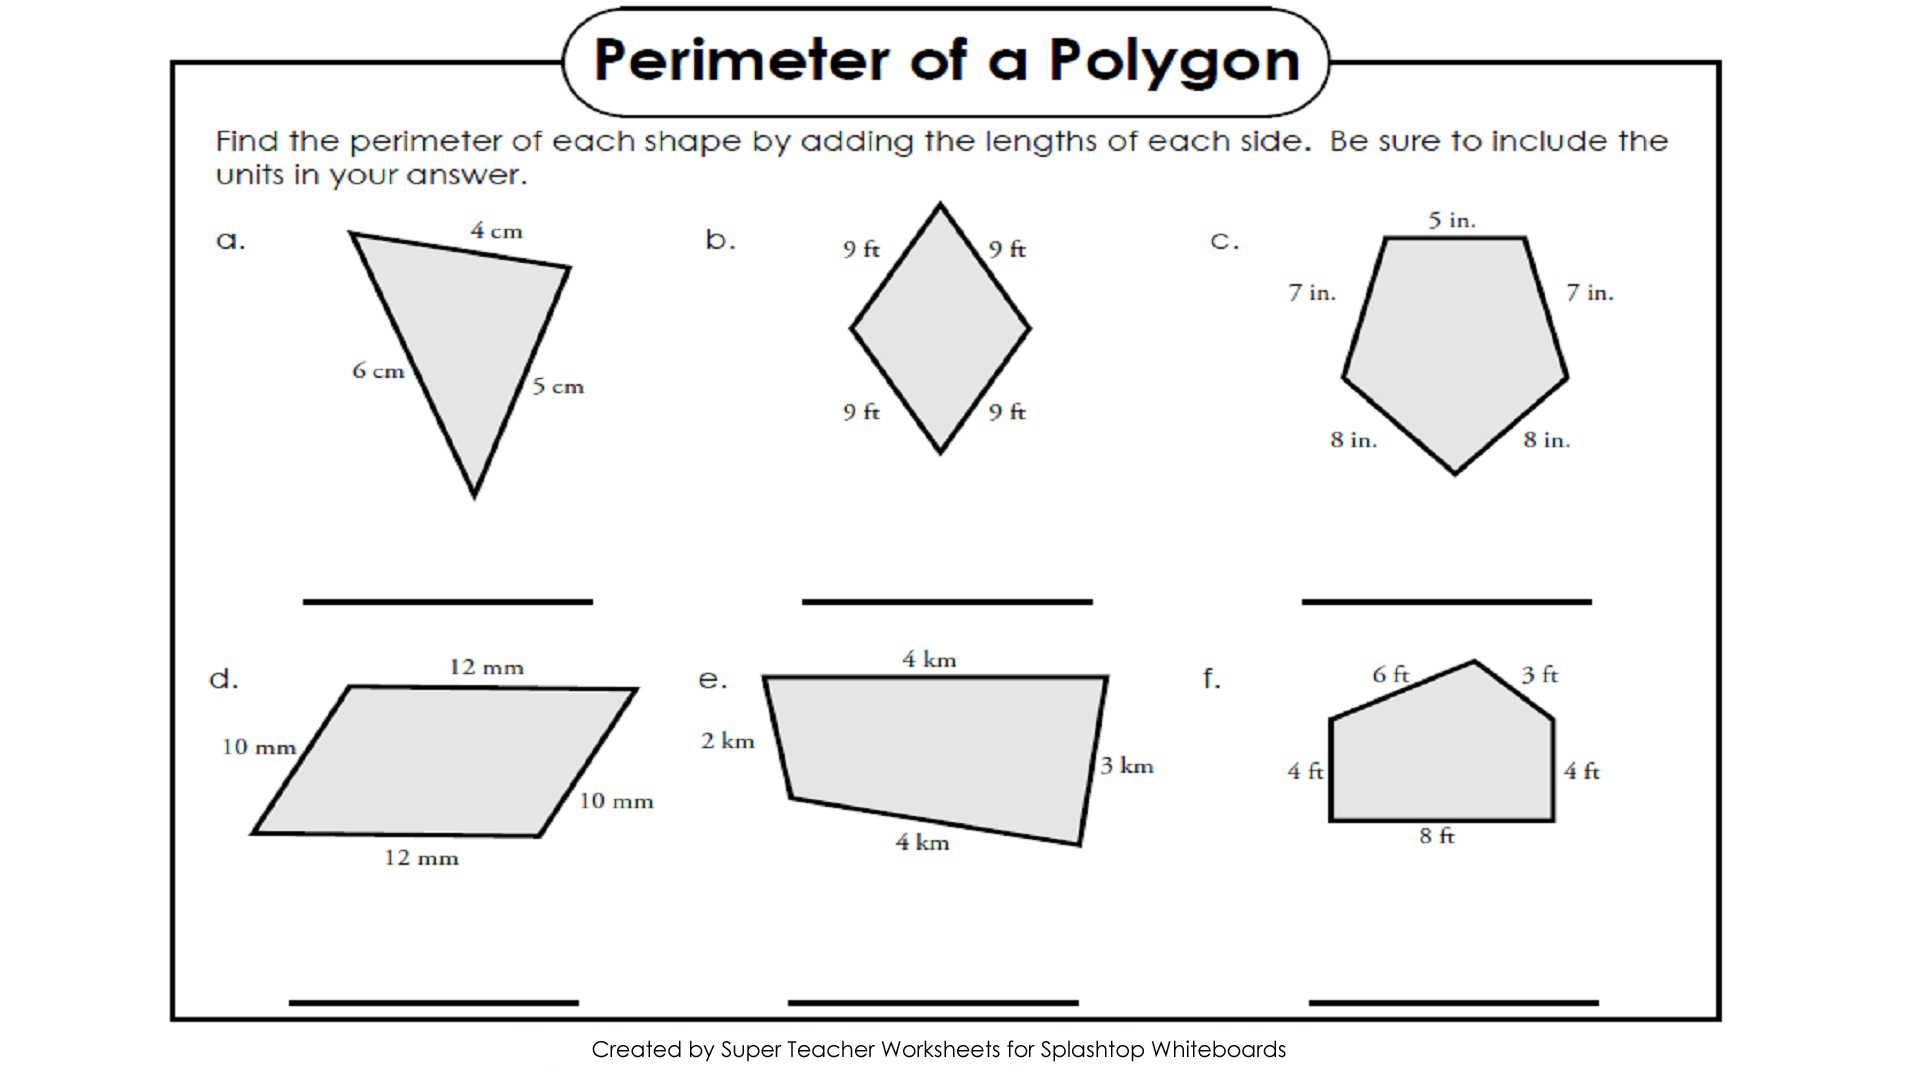 Worksheets Finding Perimeter Worksheets splashtop whiteboard background graphics perimeter of polygons